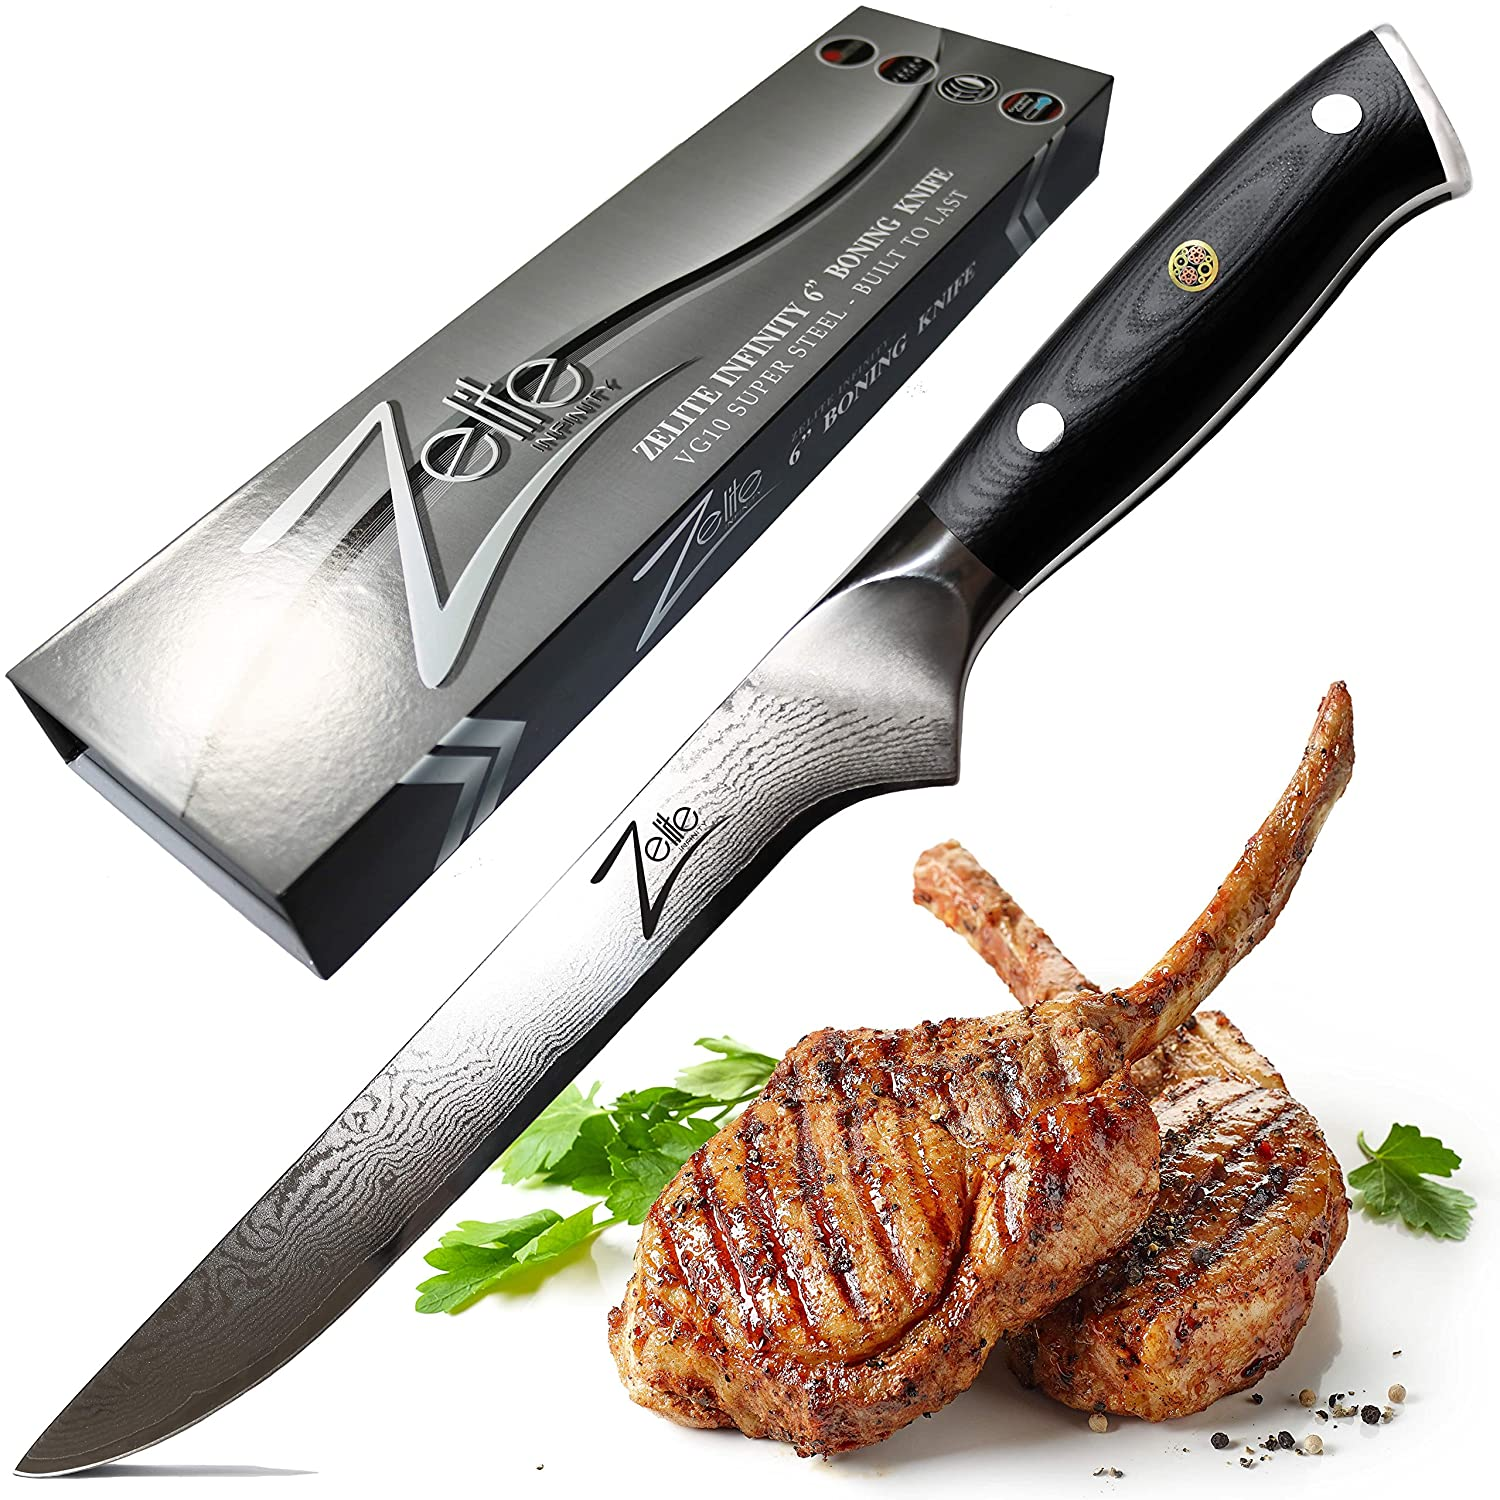 ZELITE INFINITY boning knife - The Impressive Knife